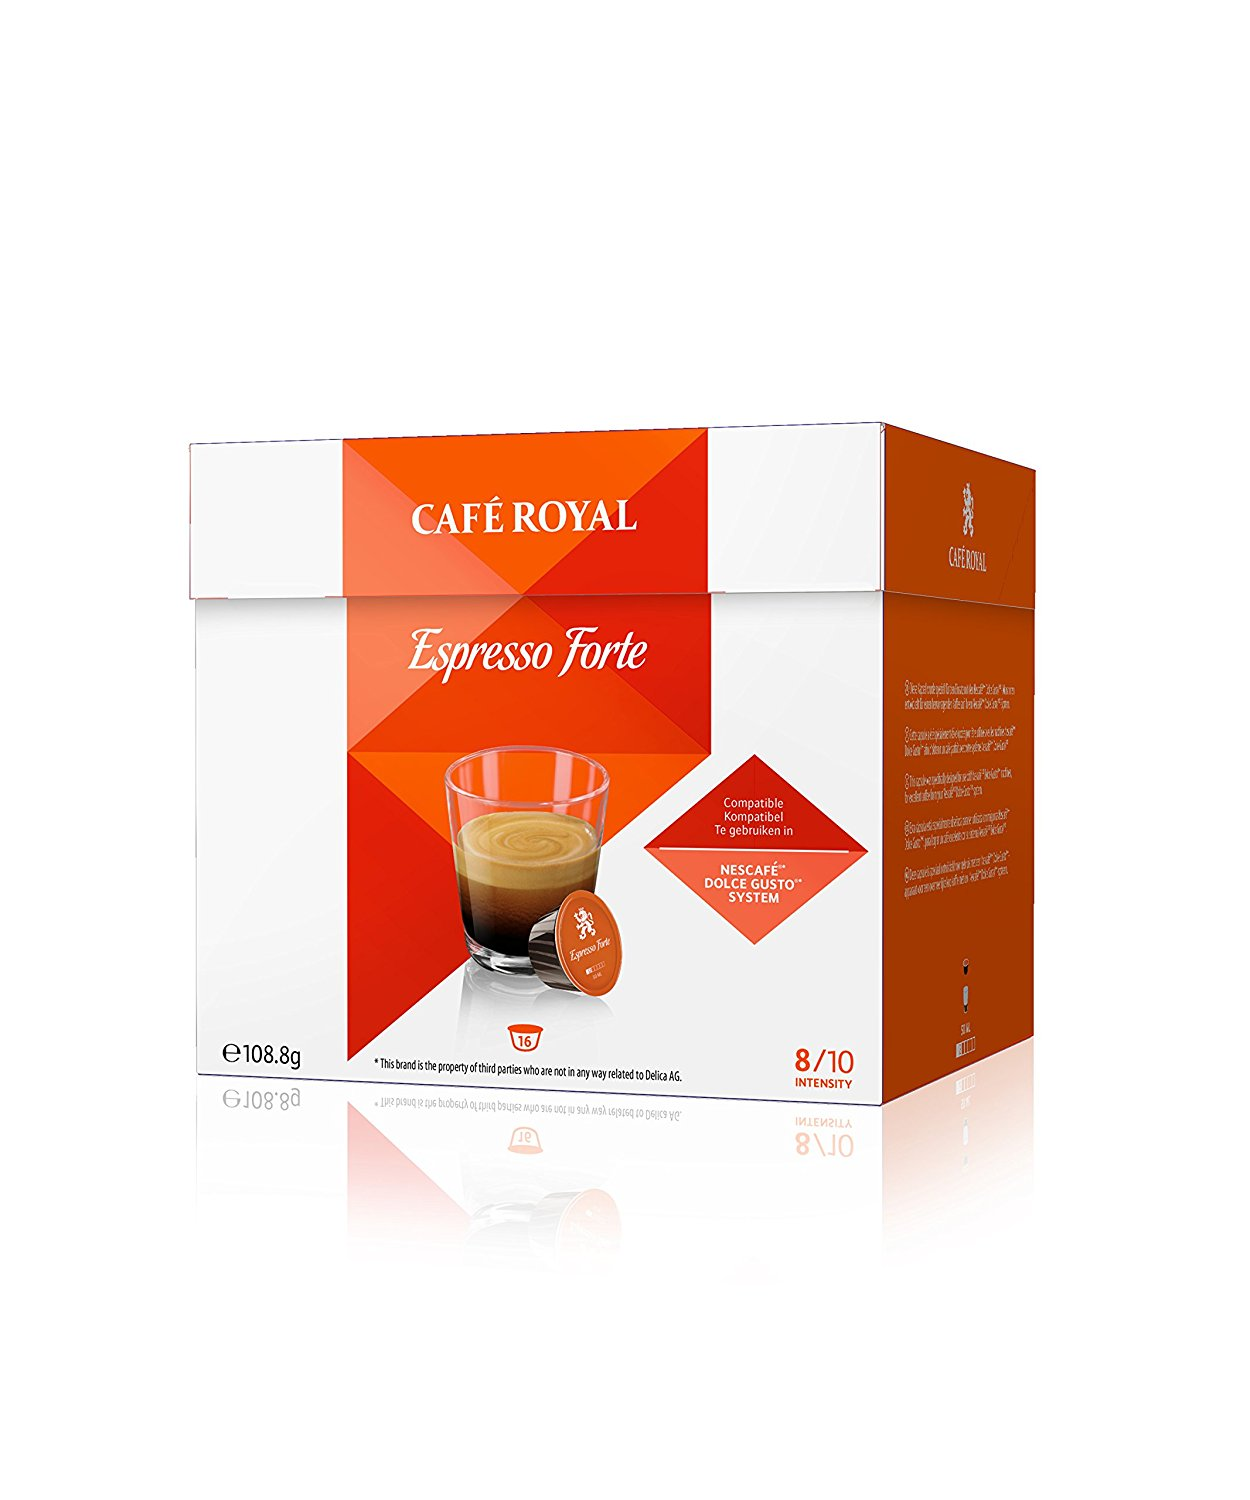 Cafe Royal Nescafe Kapseln amazon